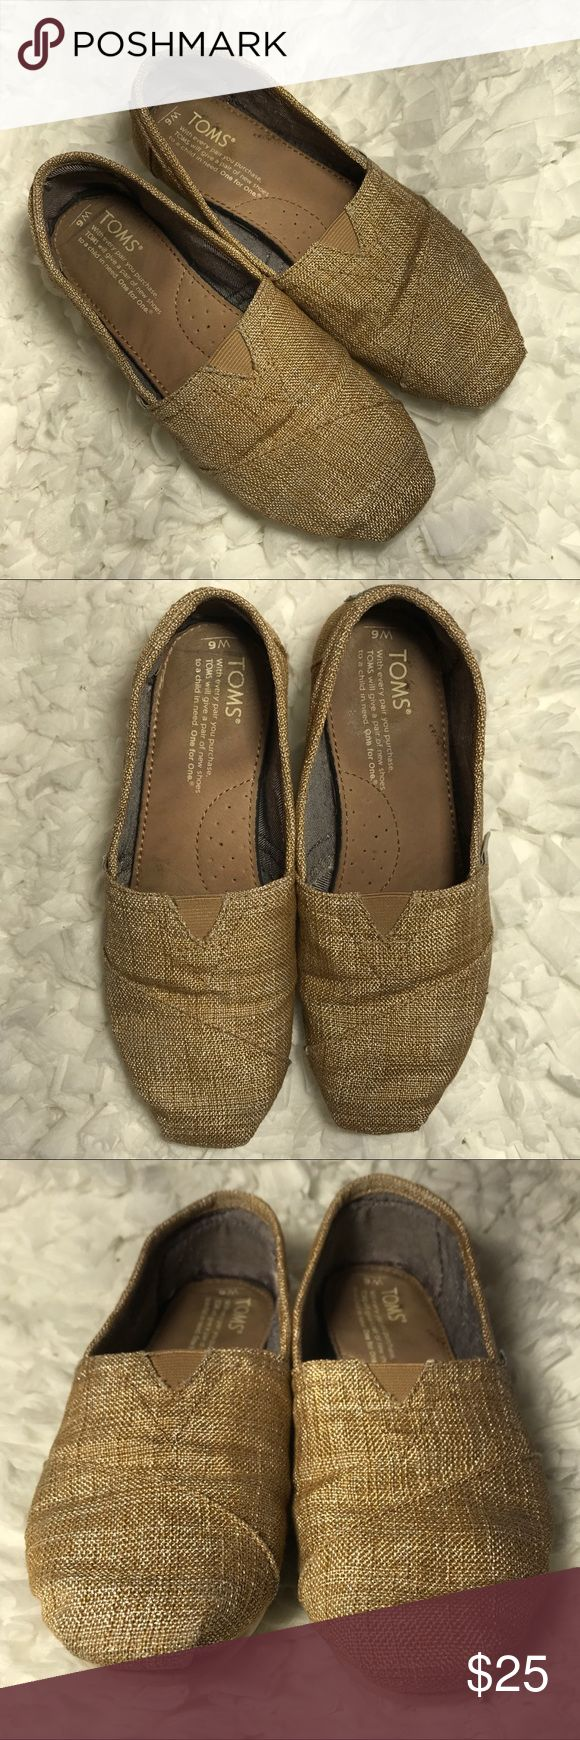 Burlap TOMS Good used condition. See photos for signs of wear - lots of life left! Great for summer going into fall. Bundle and save. Thanks for looking! 😊 TOMS Shoes Flats & Loafers